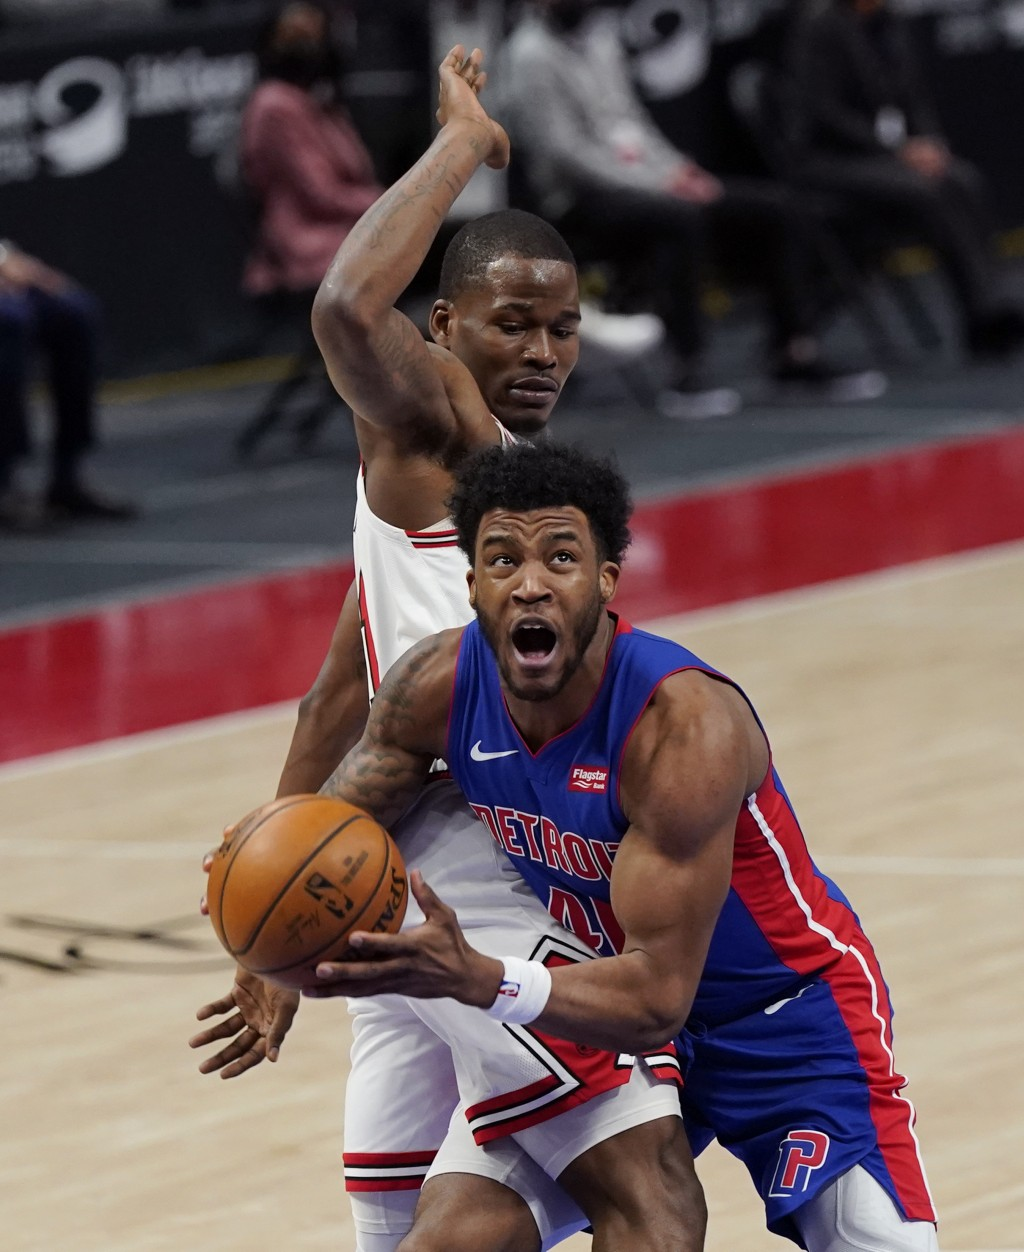 Detroit Pistons forward Saddiq Bey (41) looks towards the basket as Chicago Bulls guard Javonte Green defends during the first half of an NBA basketba...